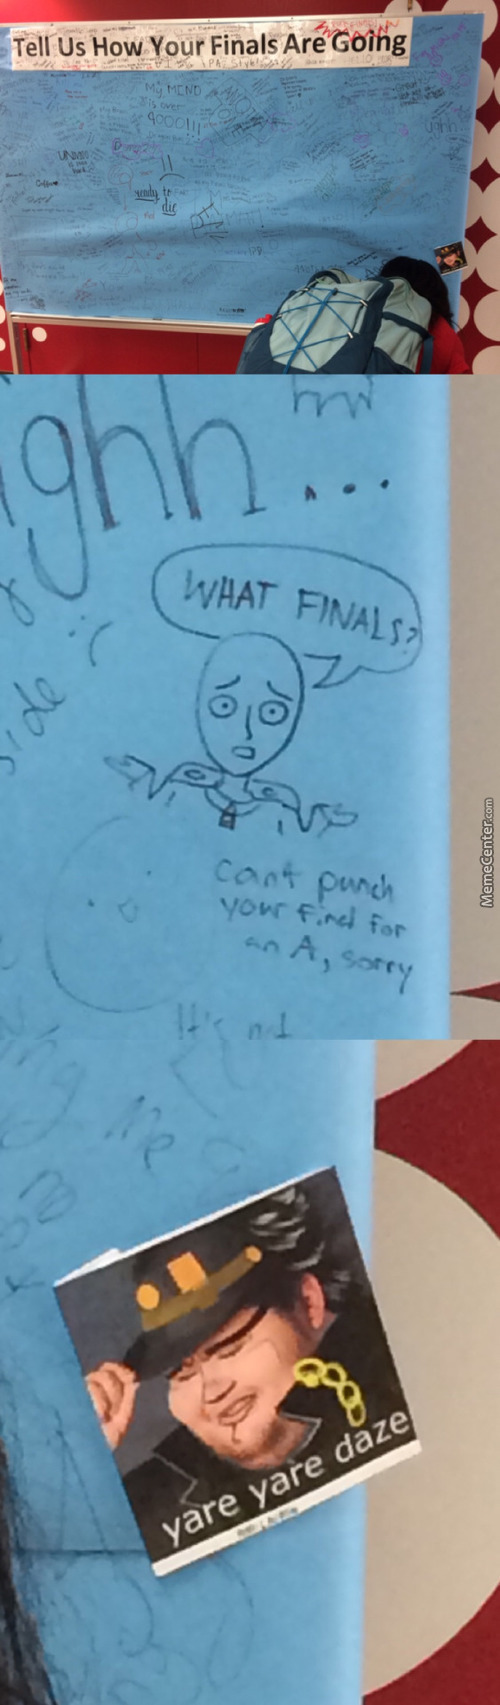 My Finals Are Coming Up, So I Found This Appropriate